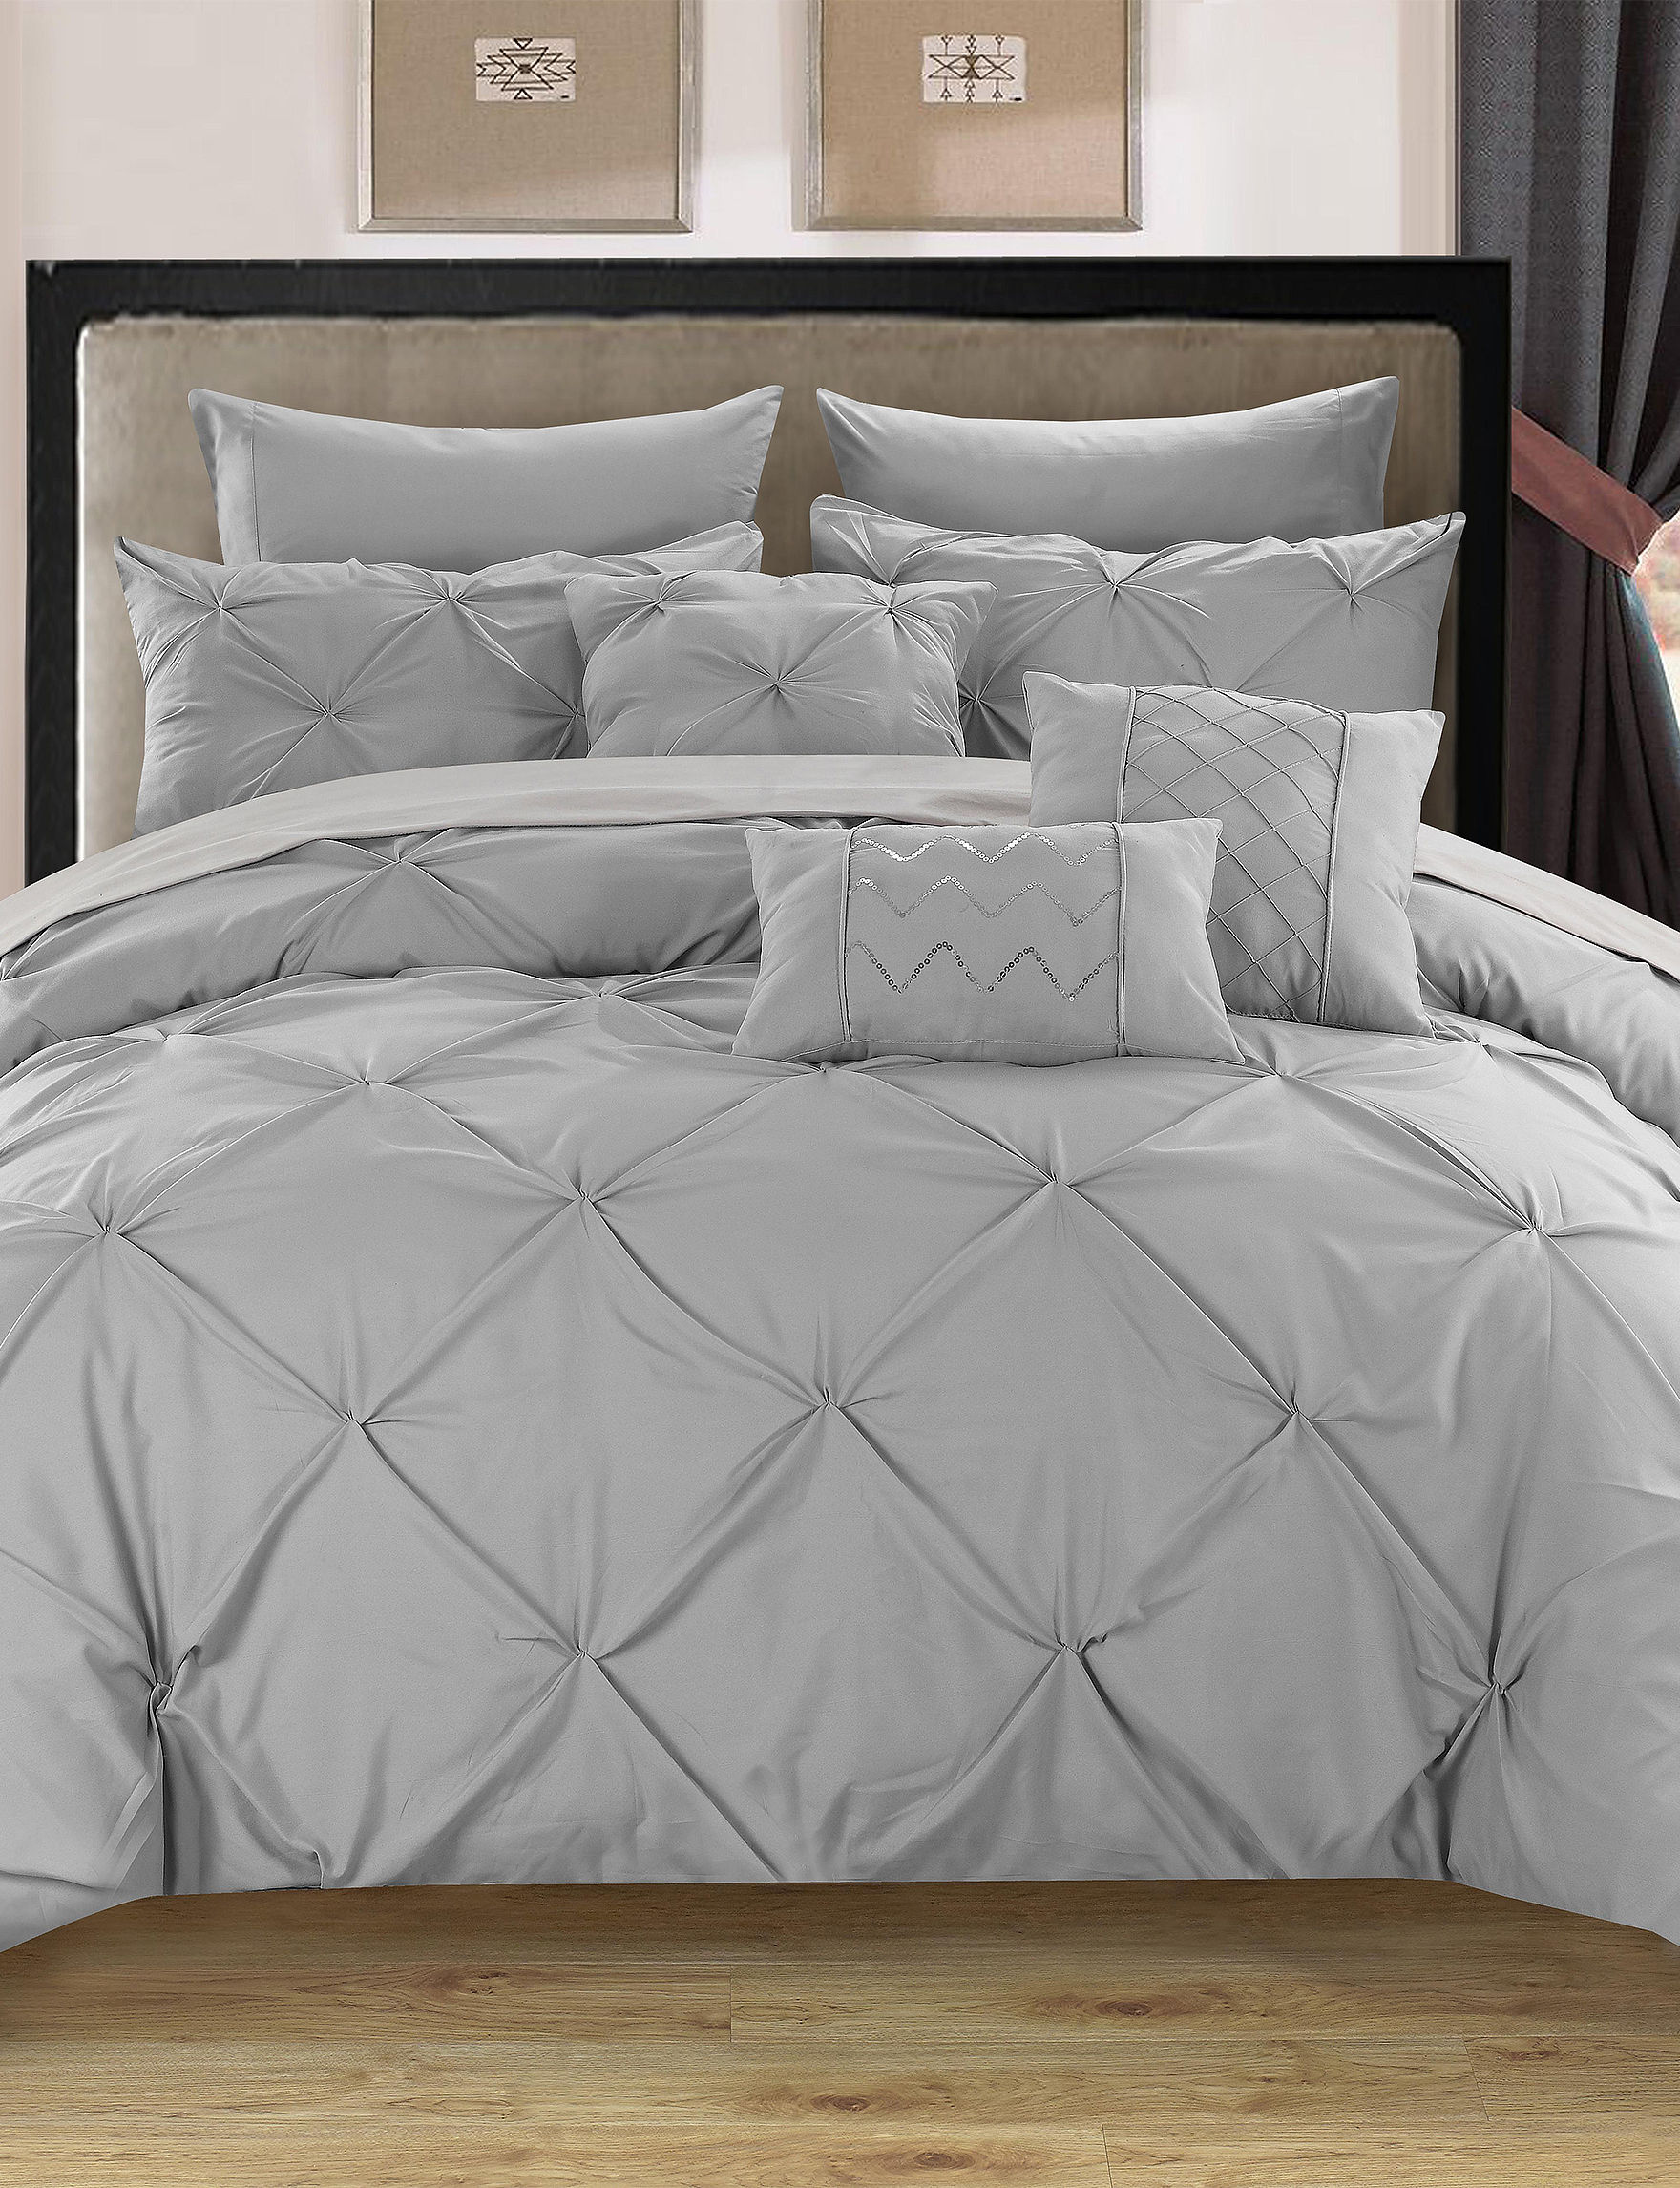 Chic Home Design Silver Comforters & Comforter Sets